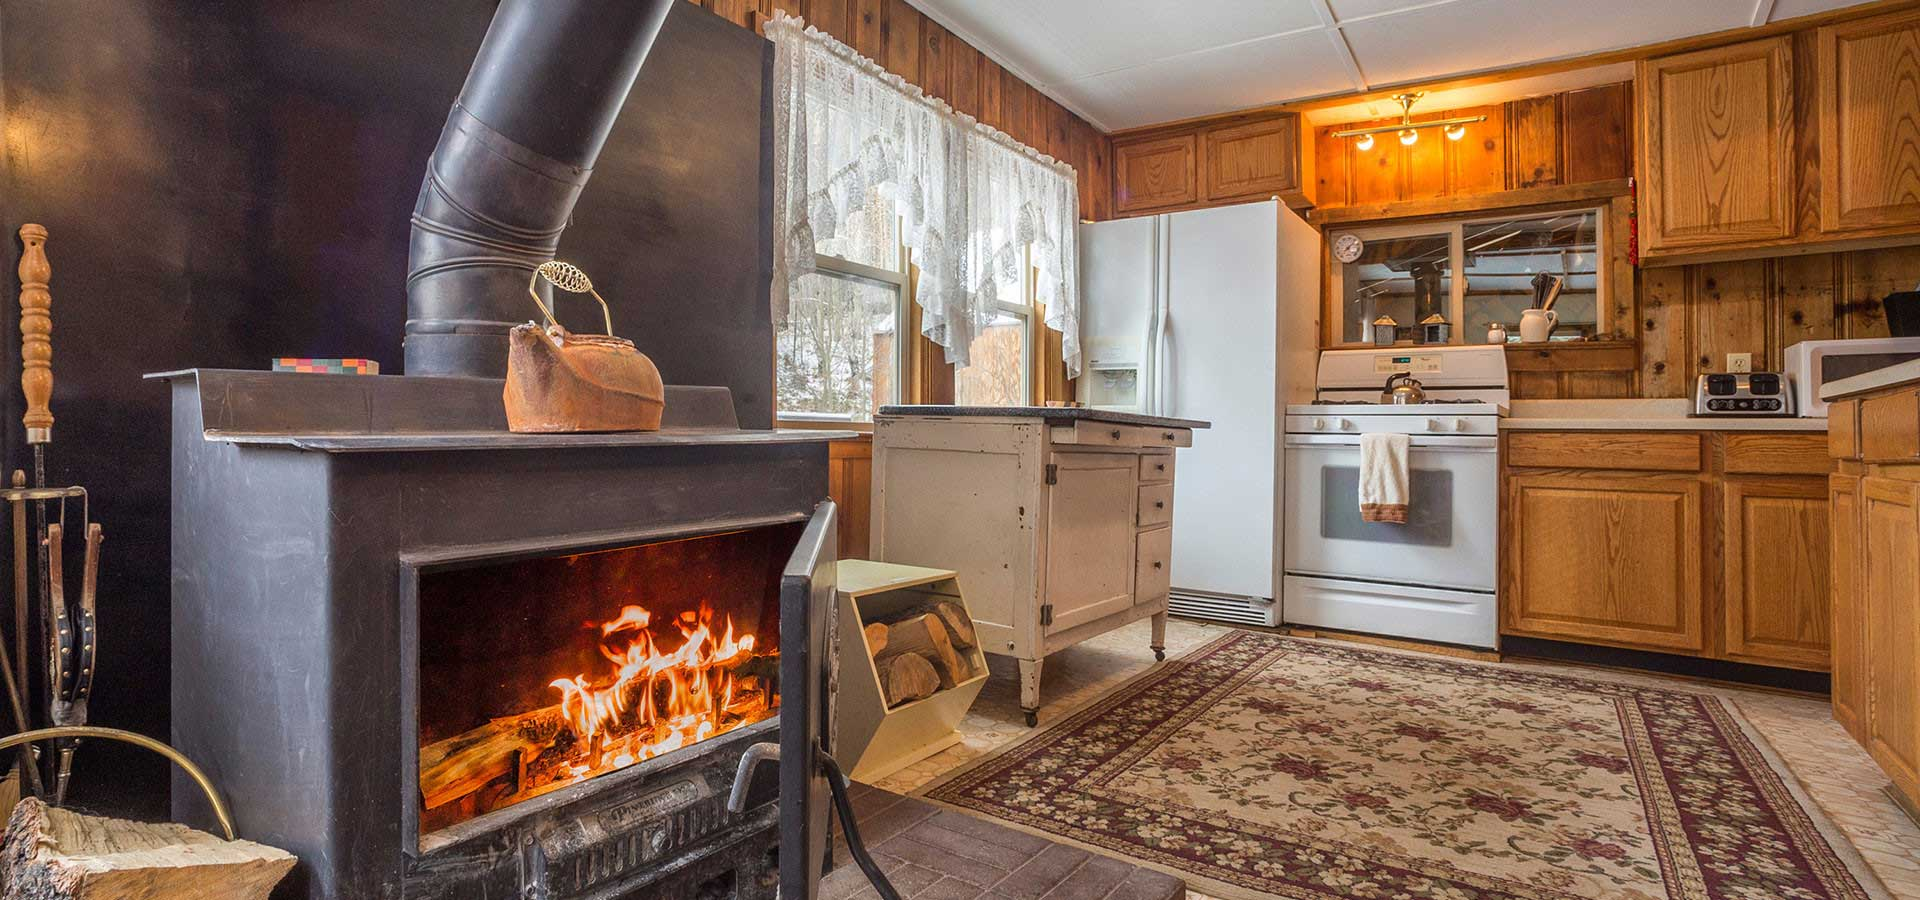 kitchen-wood-stove